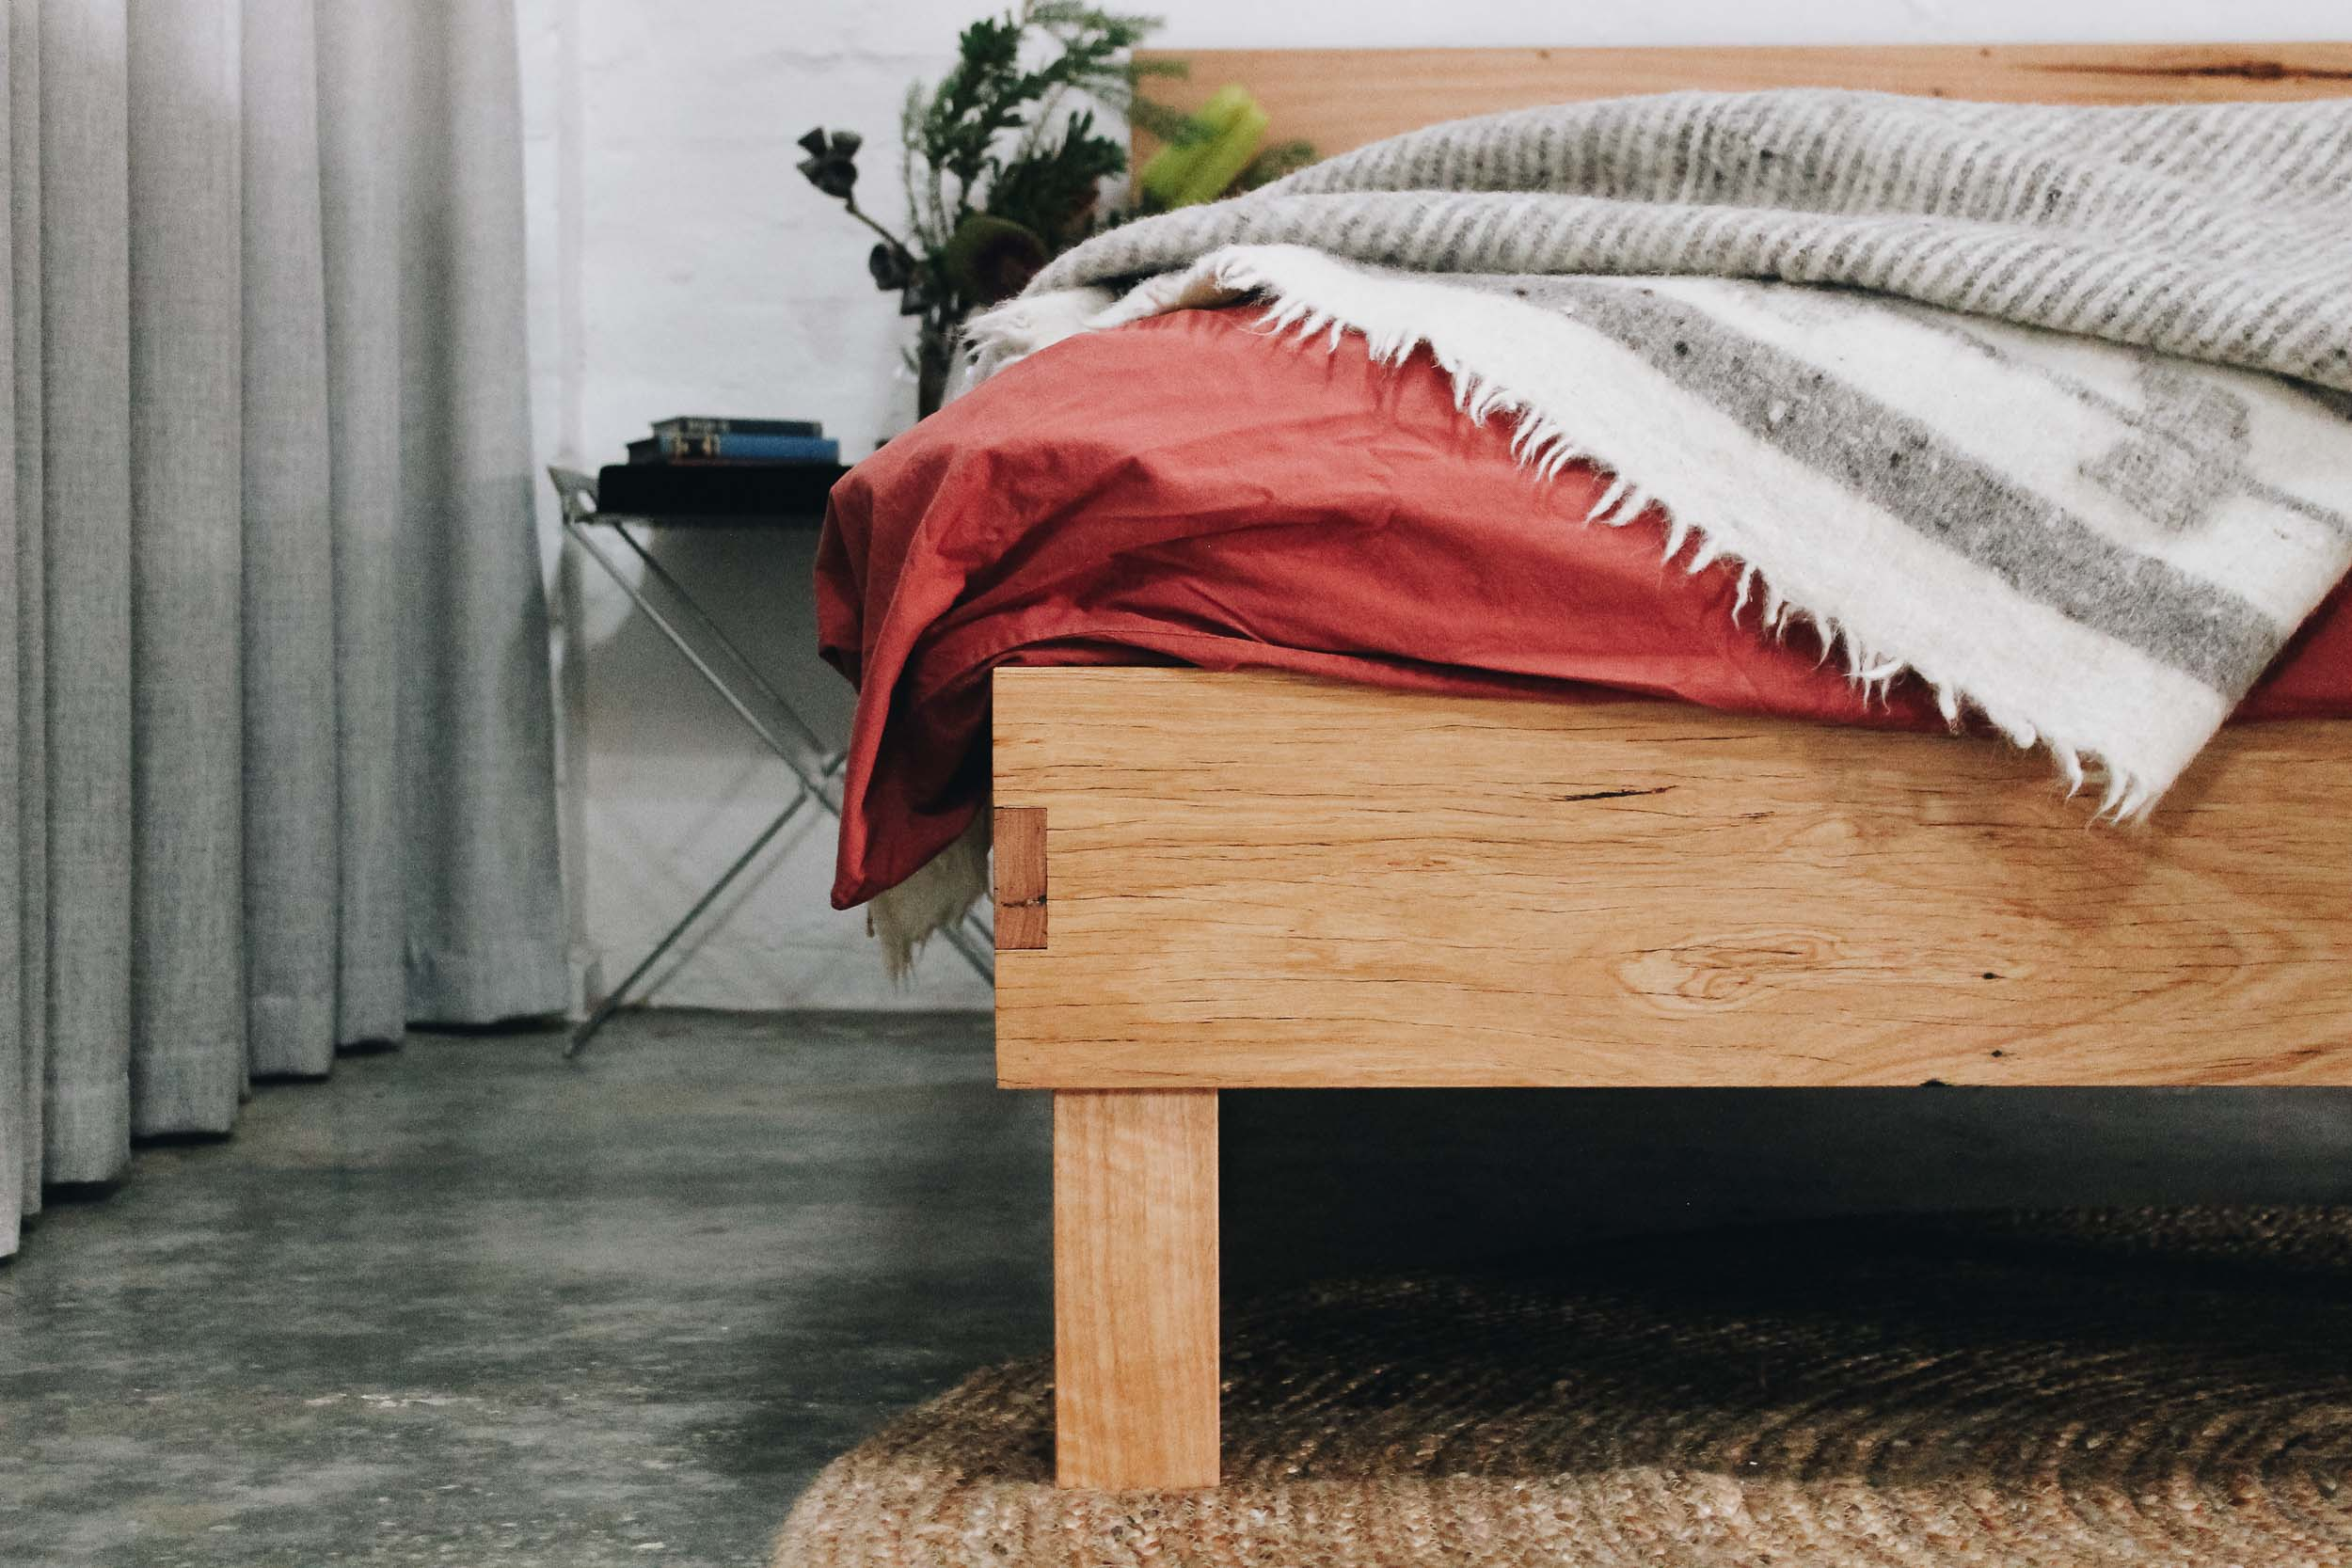 Al and Imo Handmade - Feature Headboard Square Bed - Surf Coast - Melbourne - Australia-9.jpg